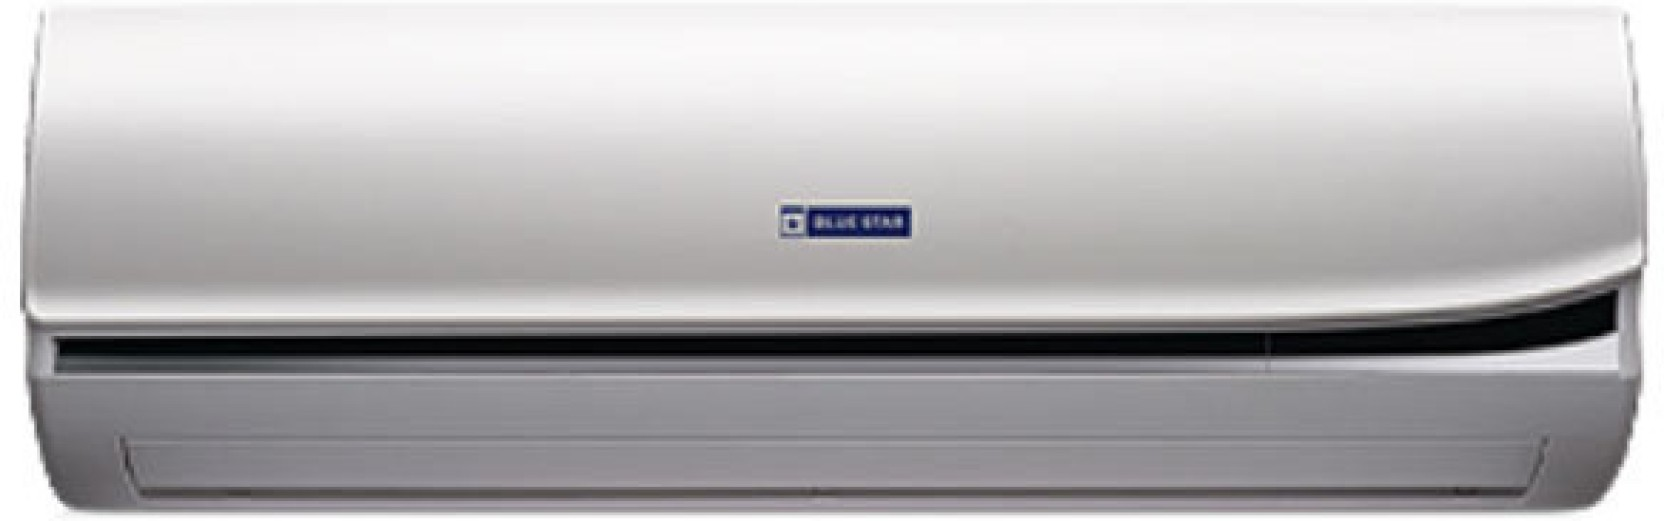 Home Ac Compressor Cost >> Flipkart.com | Buy Blue Star 1.5 Ton 3 Star Split AC - White Online at best Prices In India